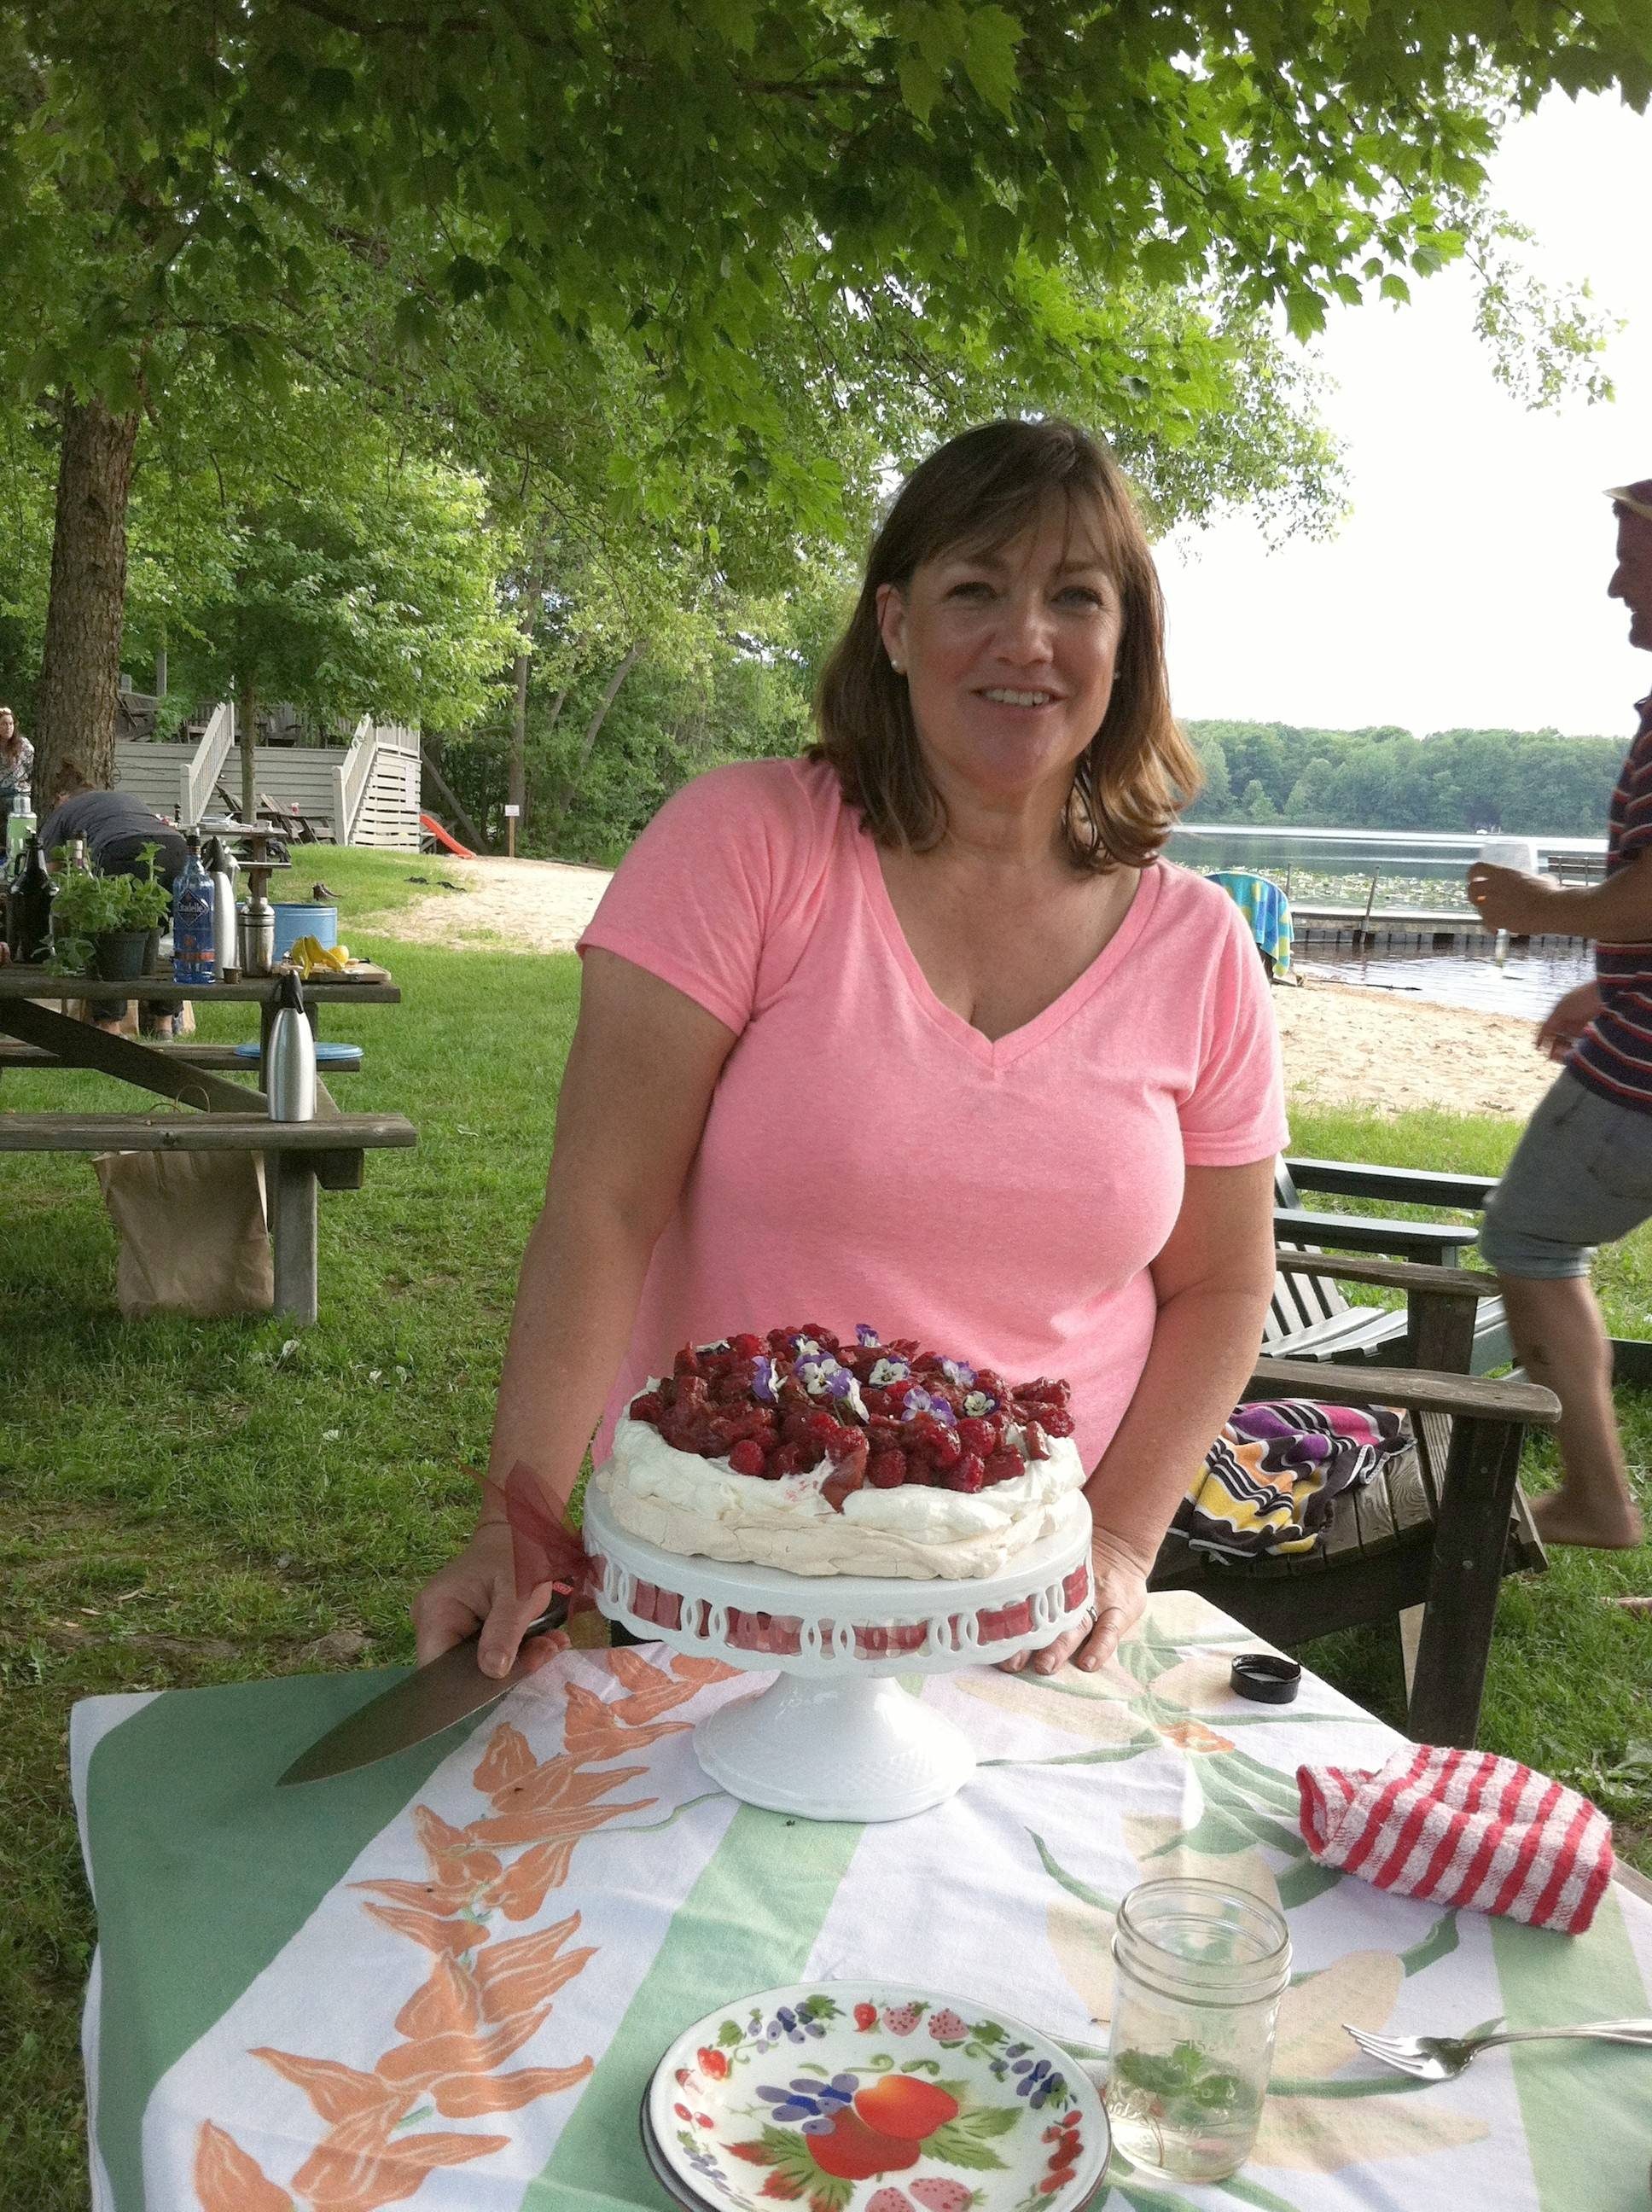 Chef Gale Gand presents her roasted rhubarb and raspberry Pavlova at the end of a meal created from ingredients sourced in southwestern Michigan.